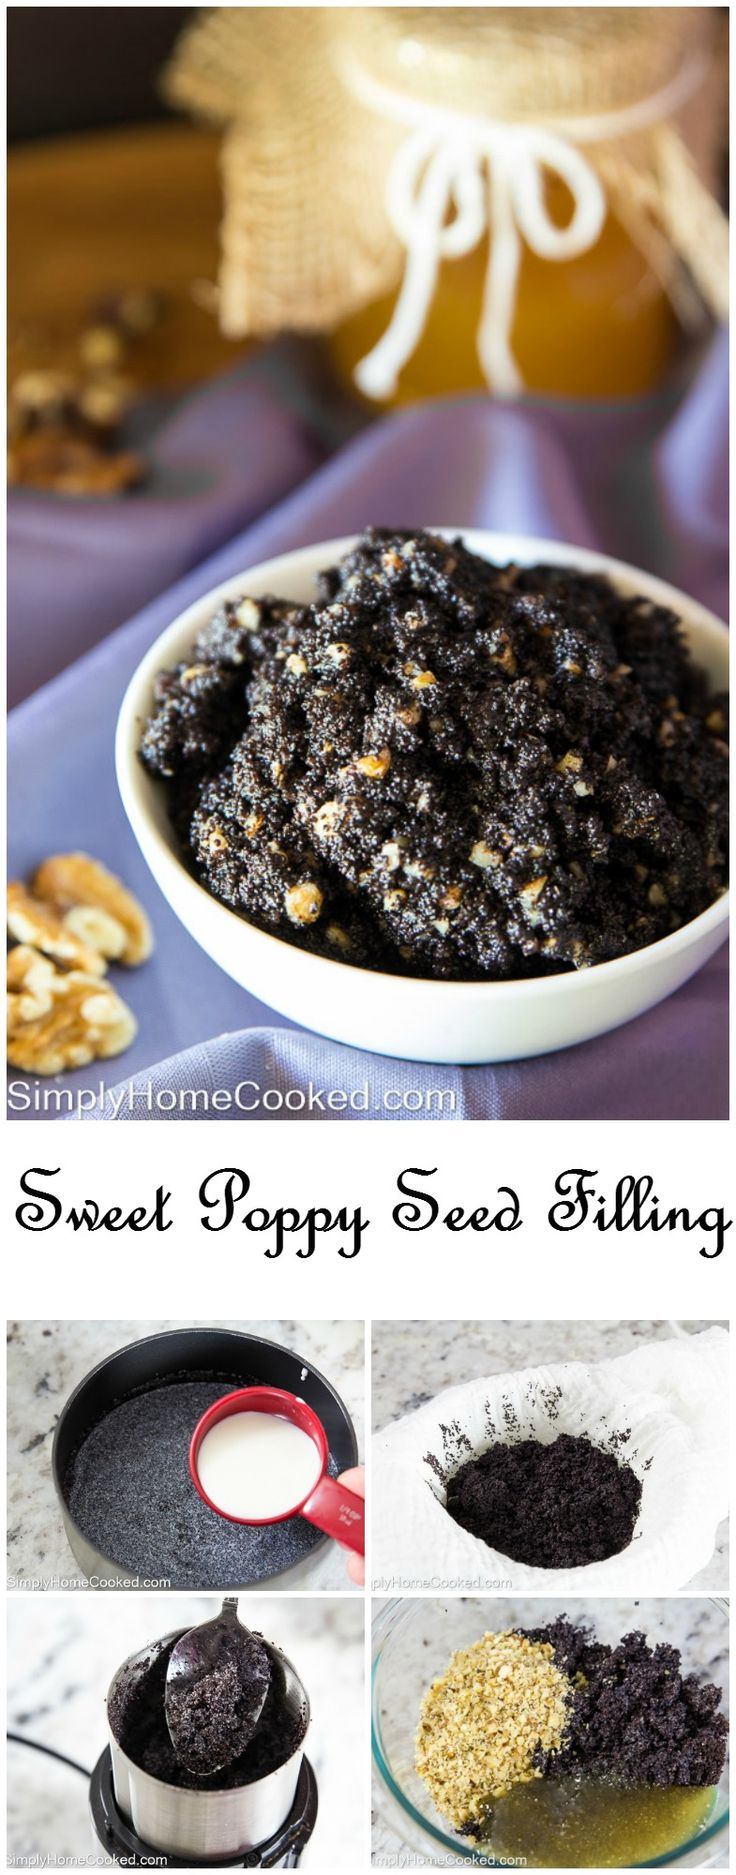 Homemade poppy seed filling- a staple in Russian baking. This sweet treat only requires 4 ingredients.